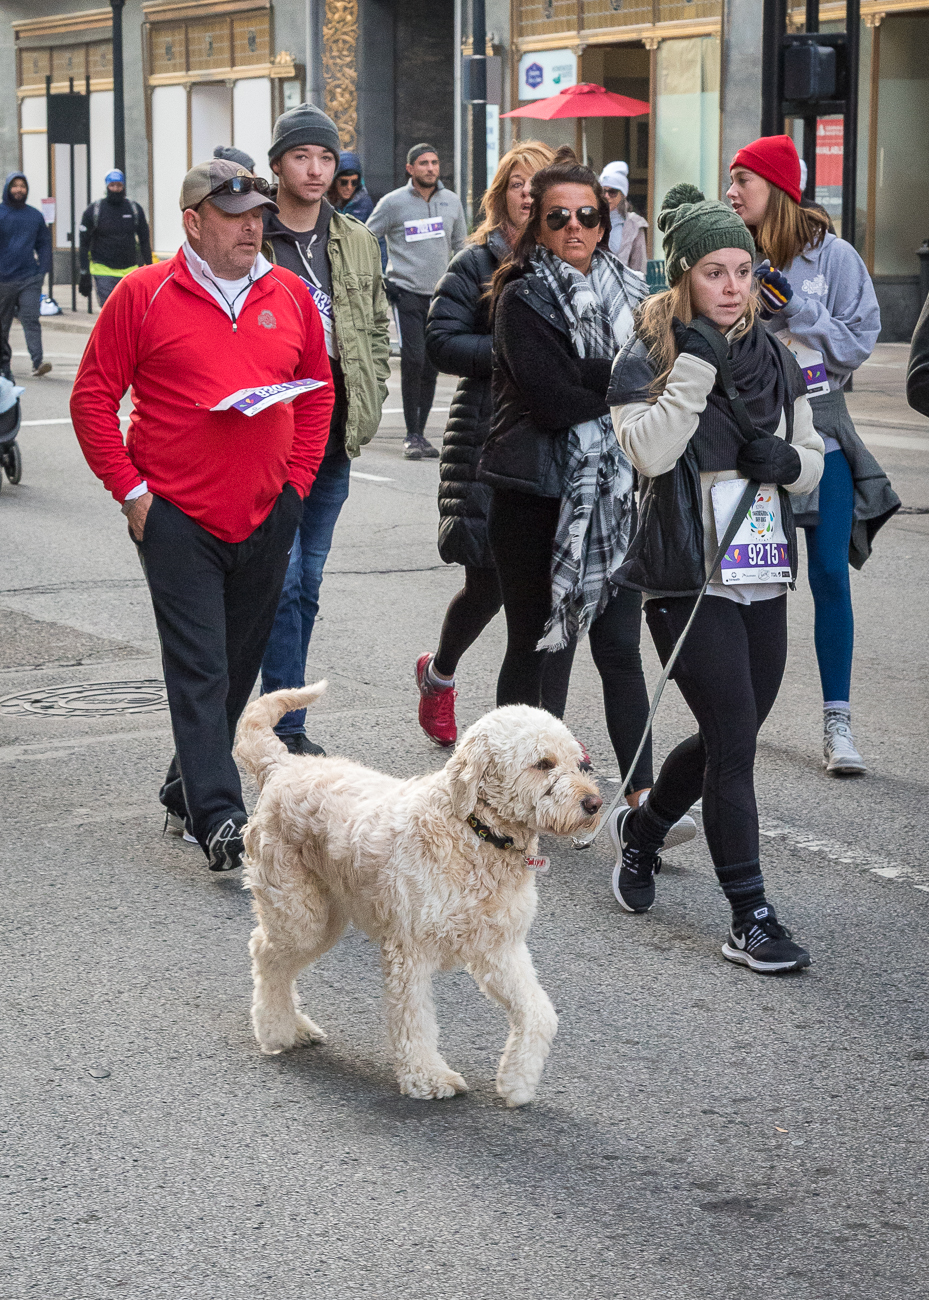 Many dogs accompanied walkers and spectators. / Image: Phil Armstrong, Cincinnati Refined // Published: 11.23.18